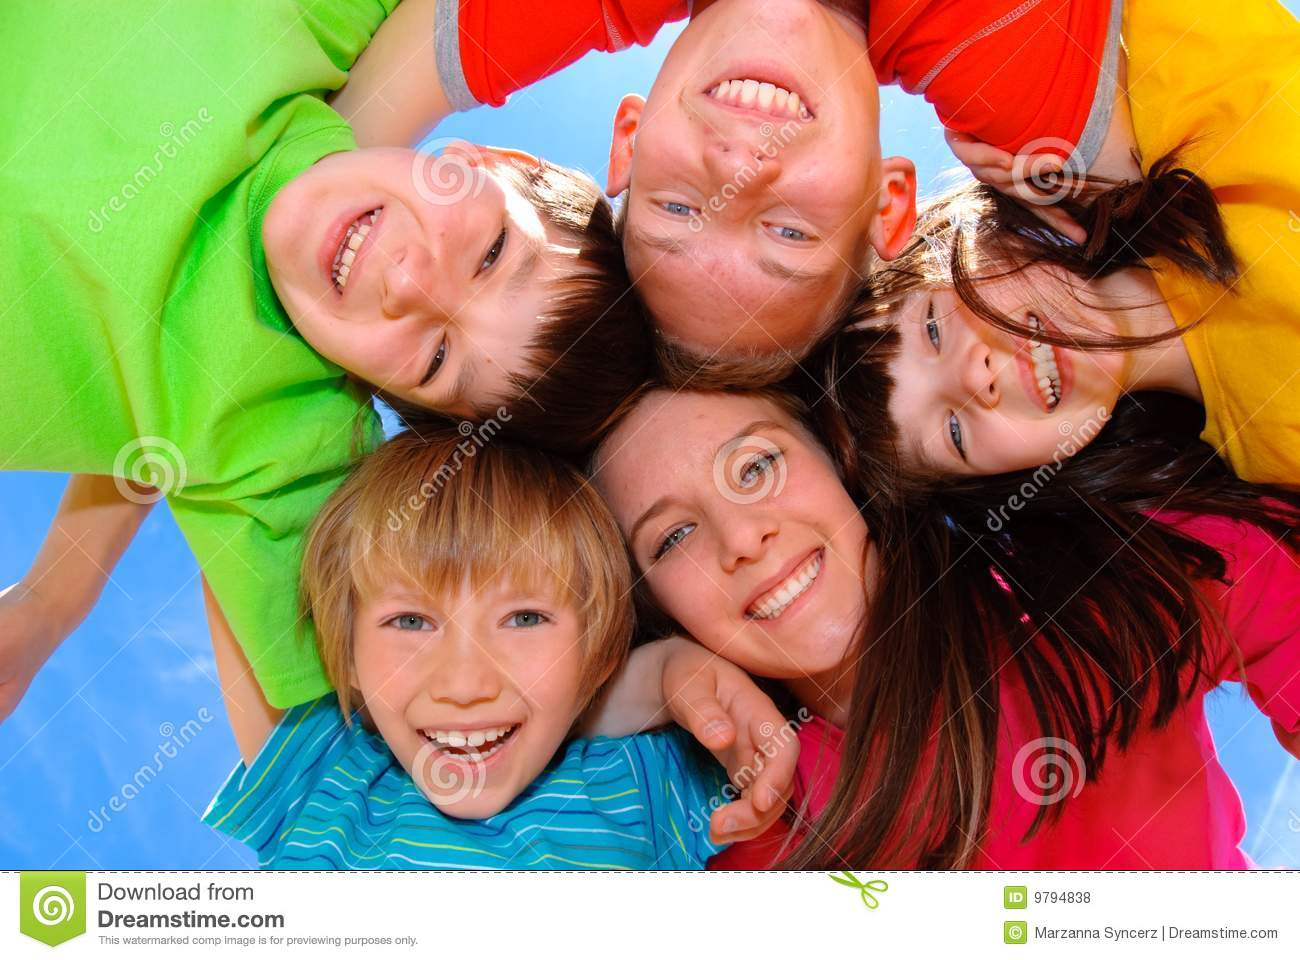 Children hugging stock photo. Image of expression, holding ...